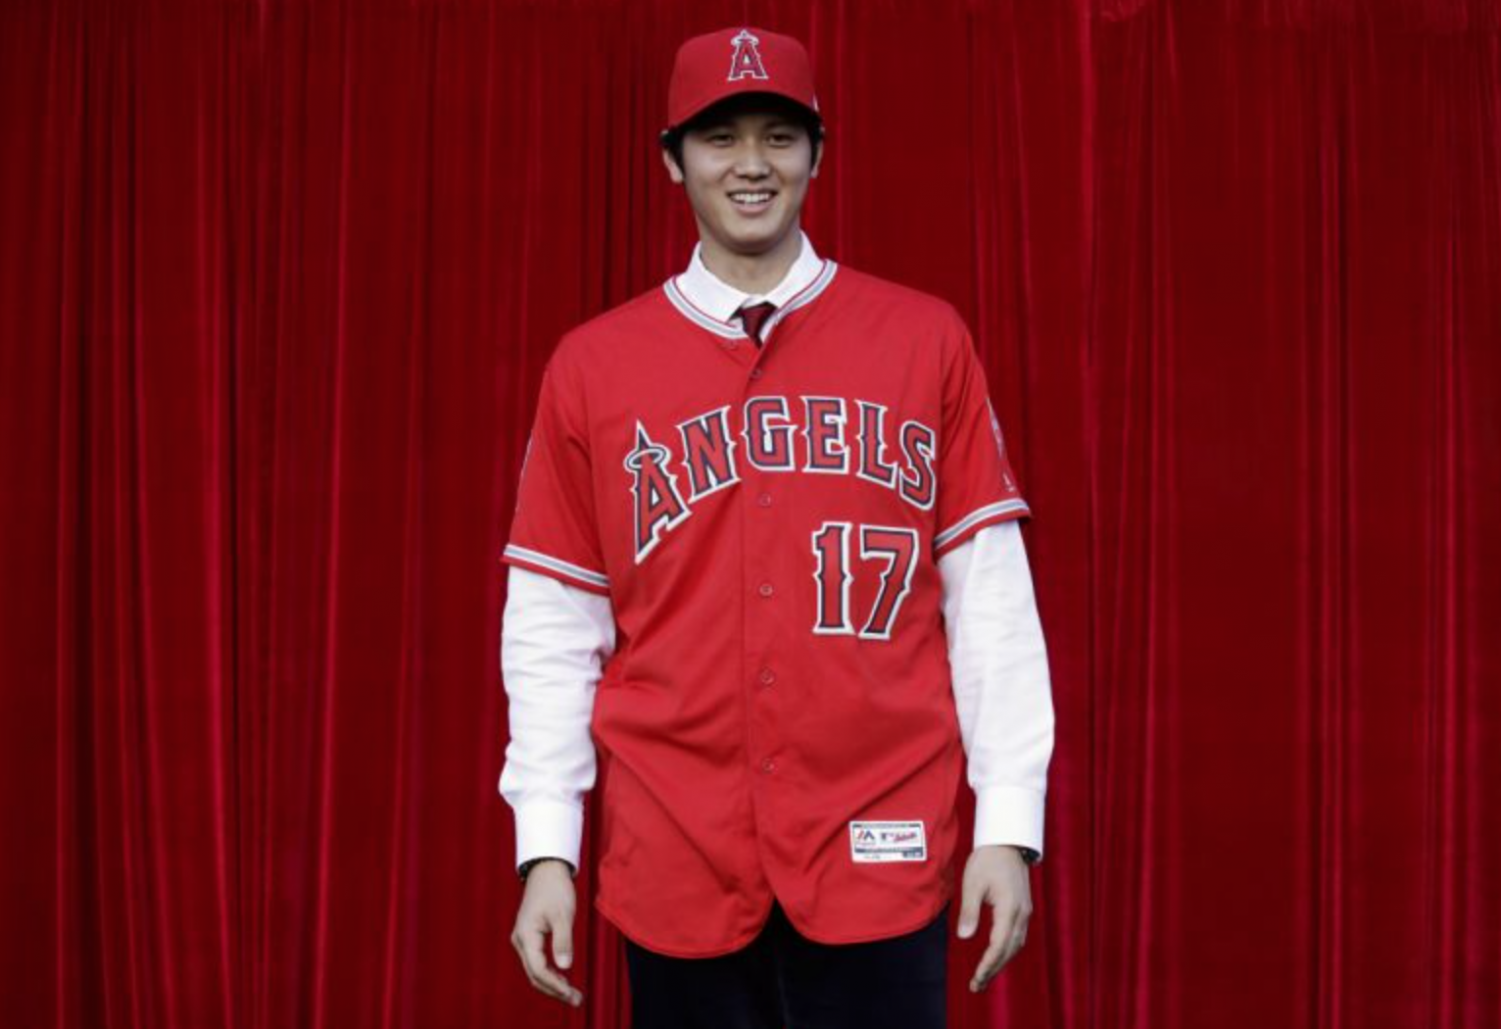 Ohtani poses in an Angels kit. Photo: Twitter/@SSSportsTalk.